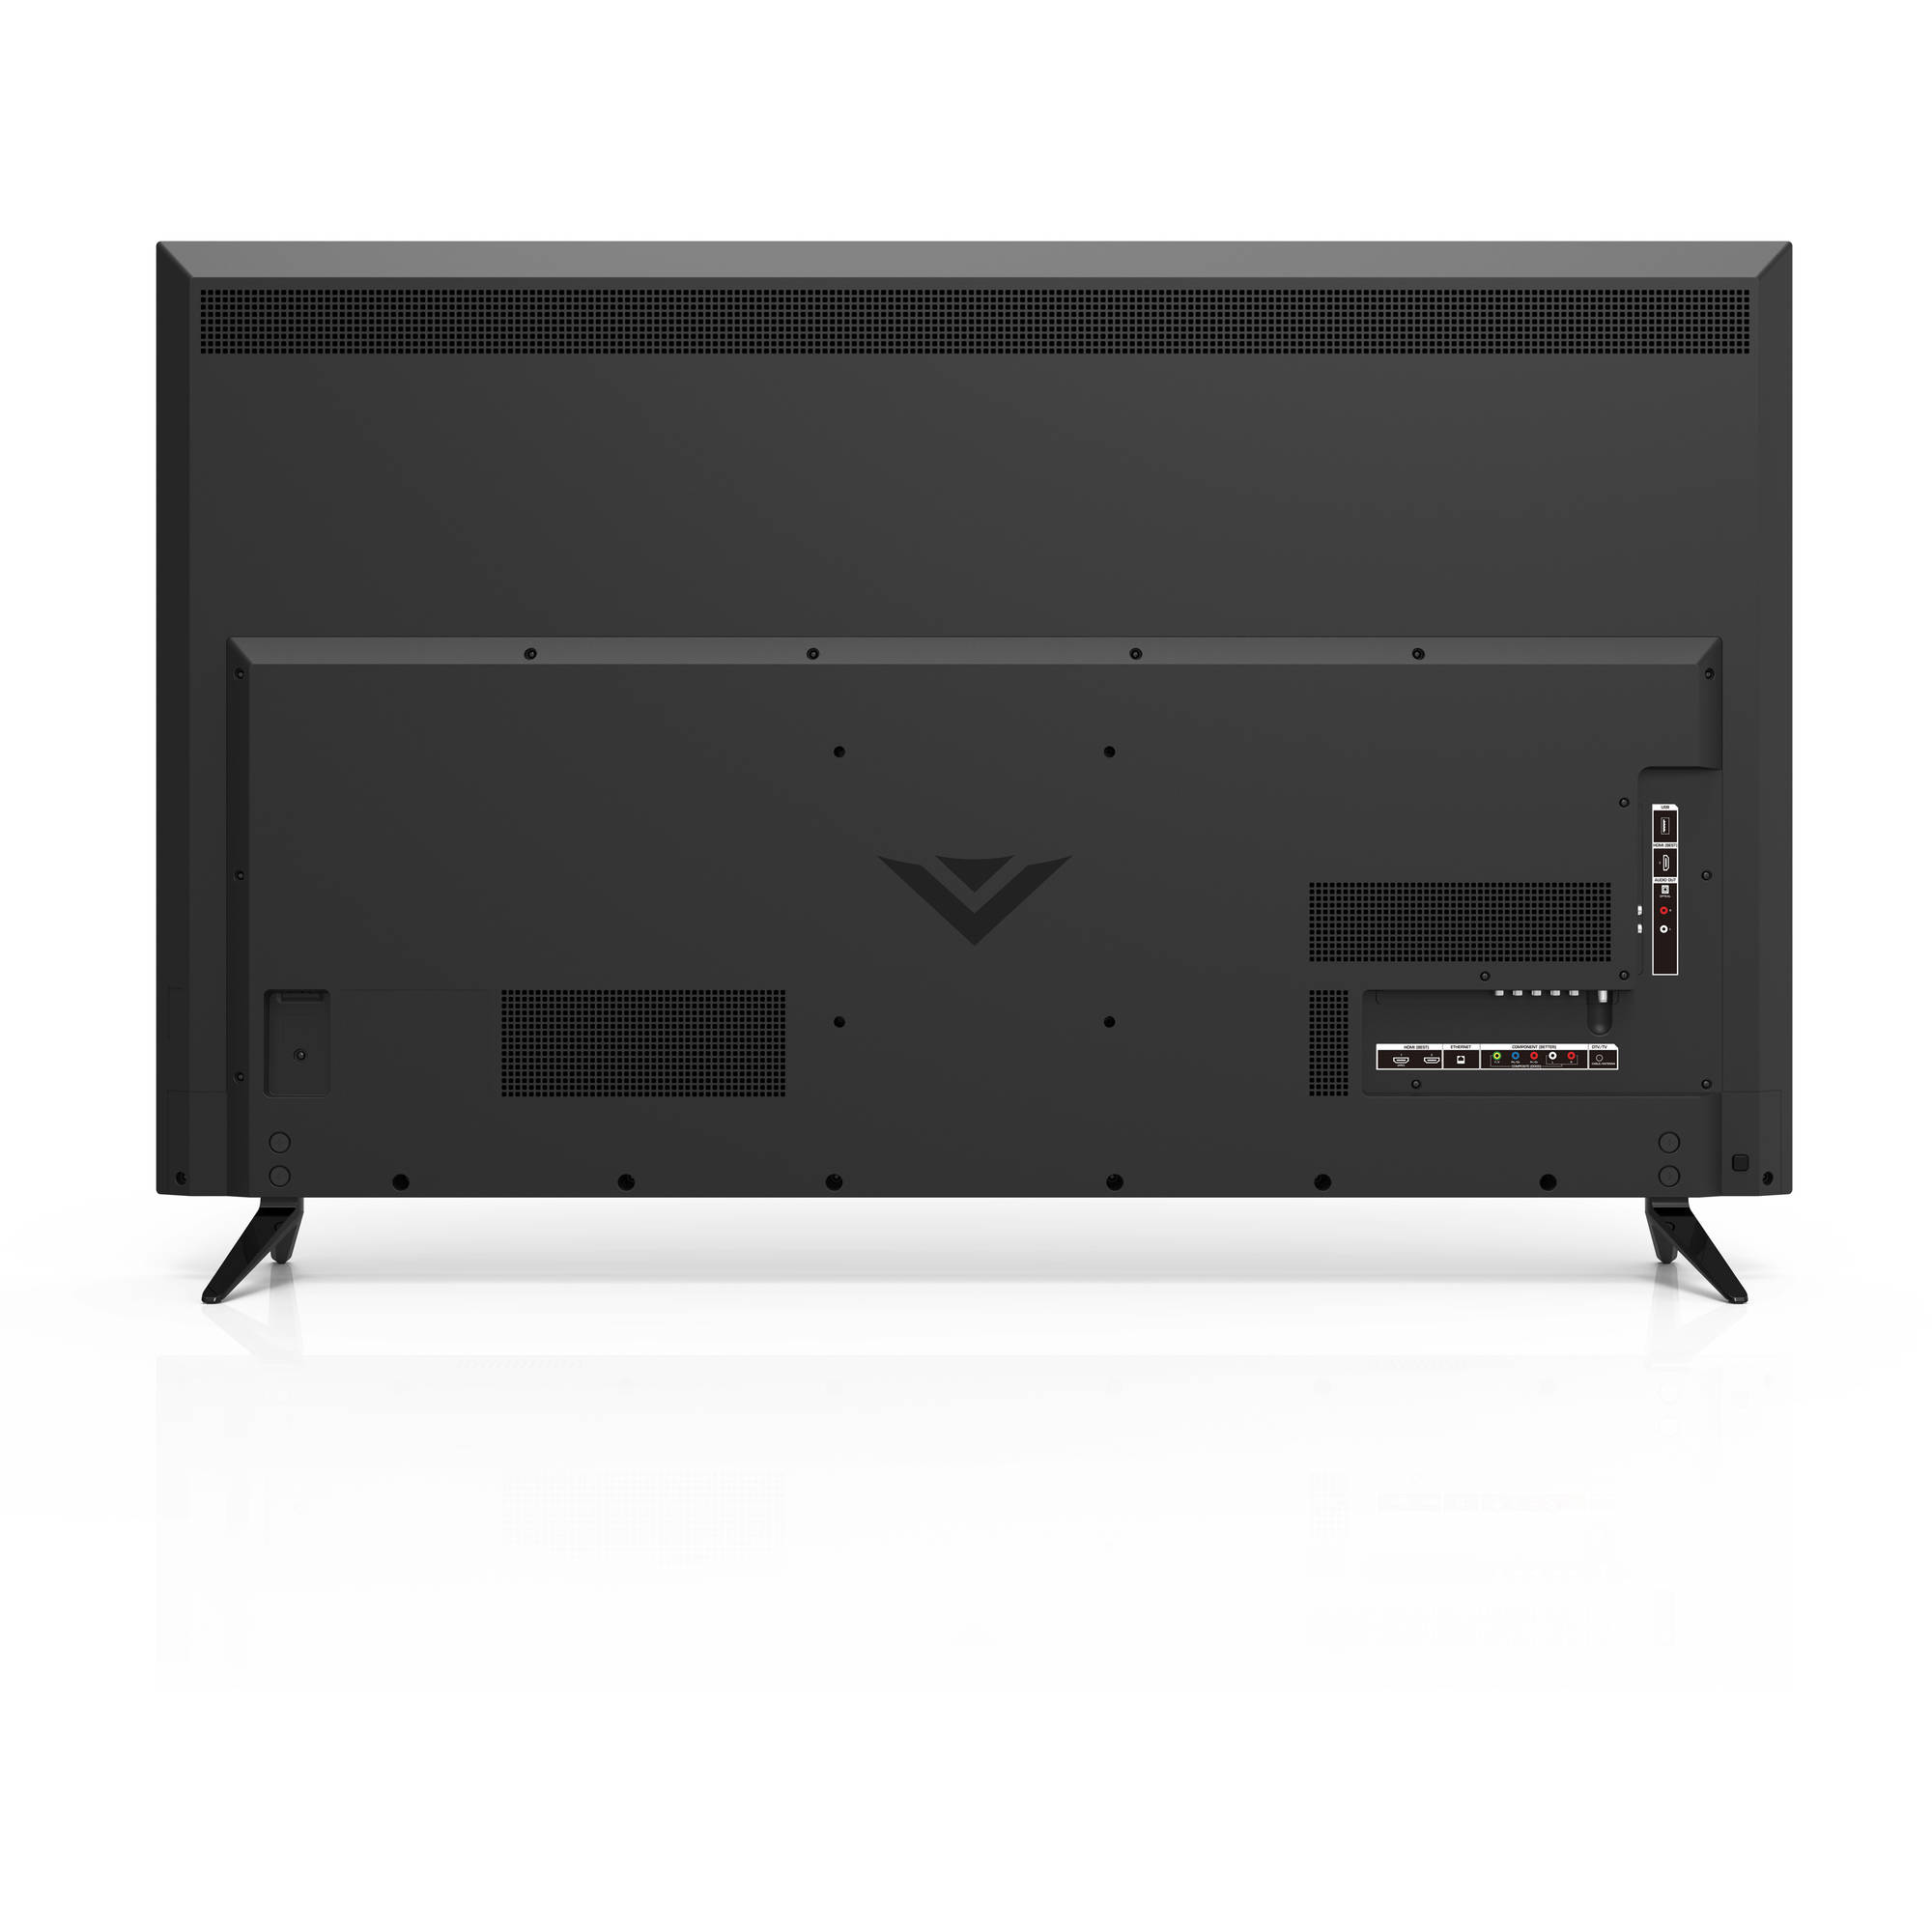 Vizio 55 Class Fhd 1080p Smart Led Tv D55f E2 Walmart Com